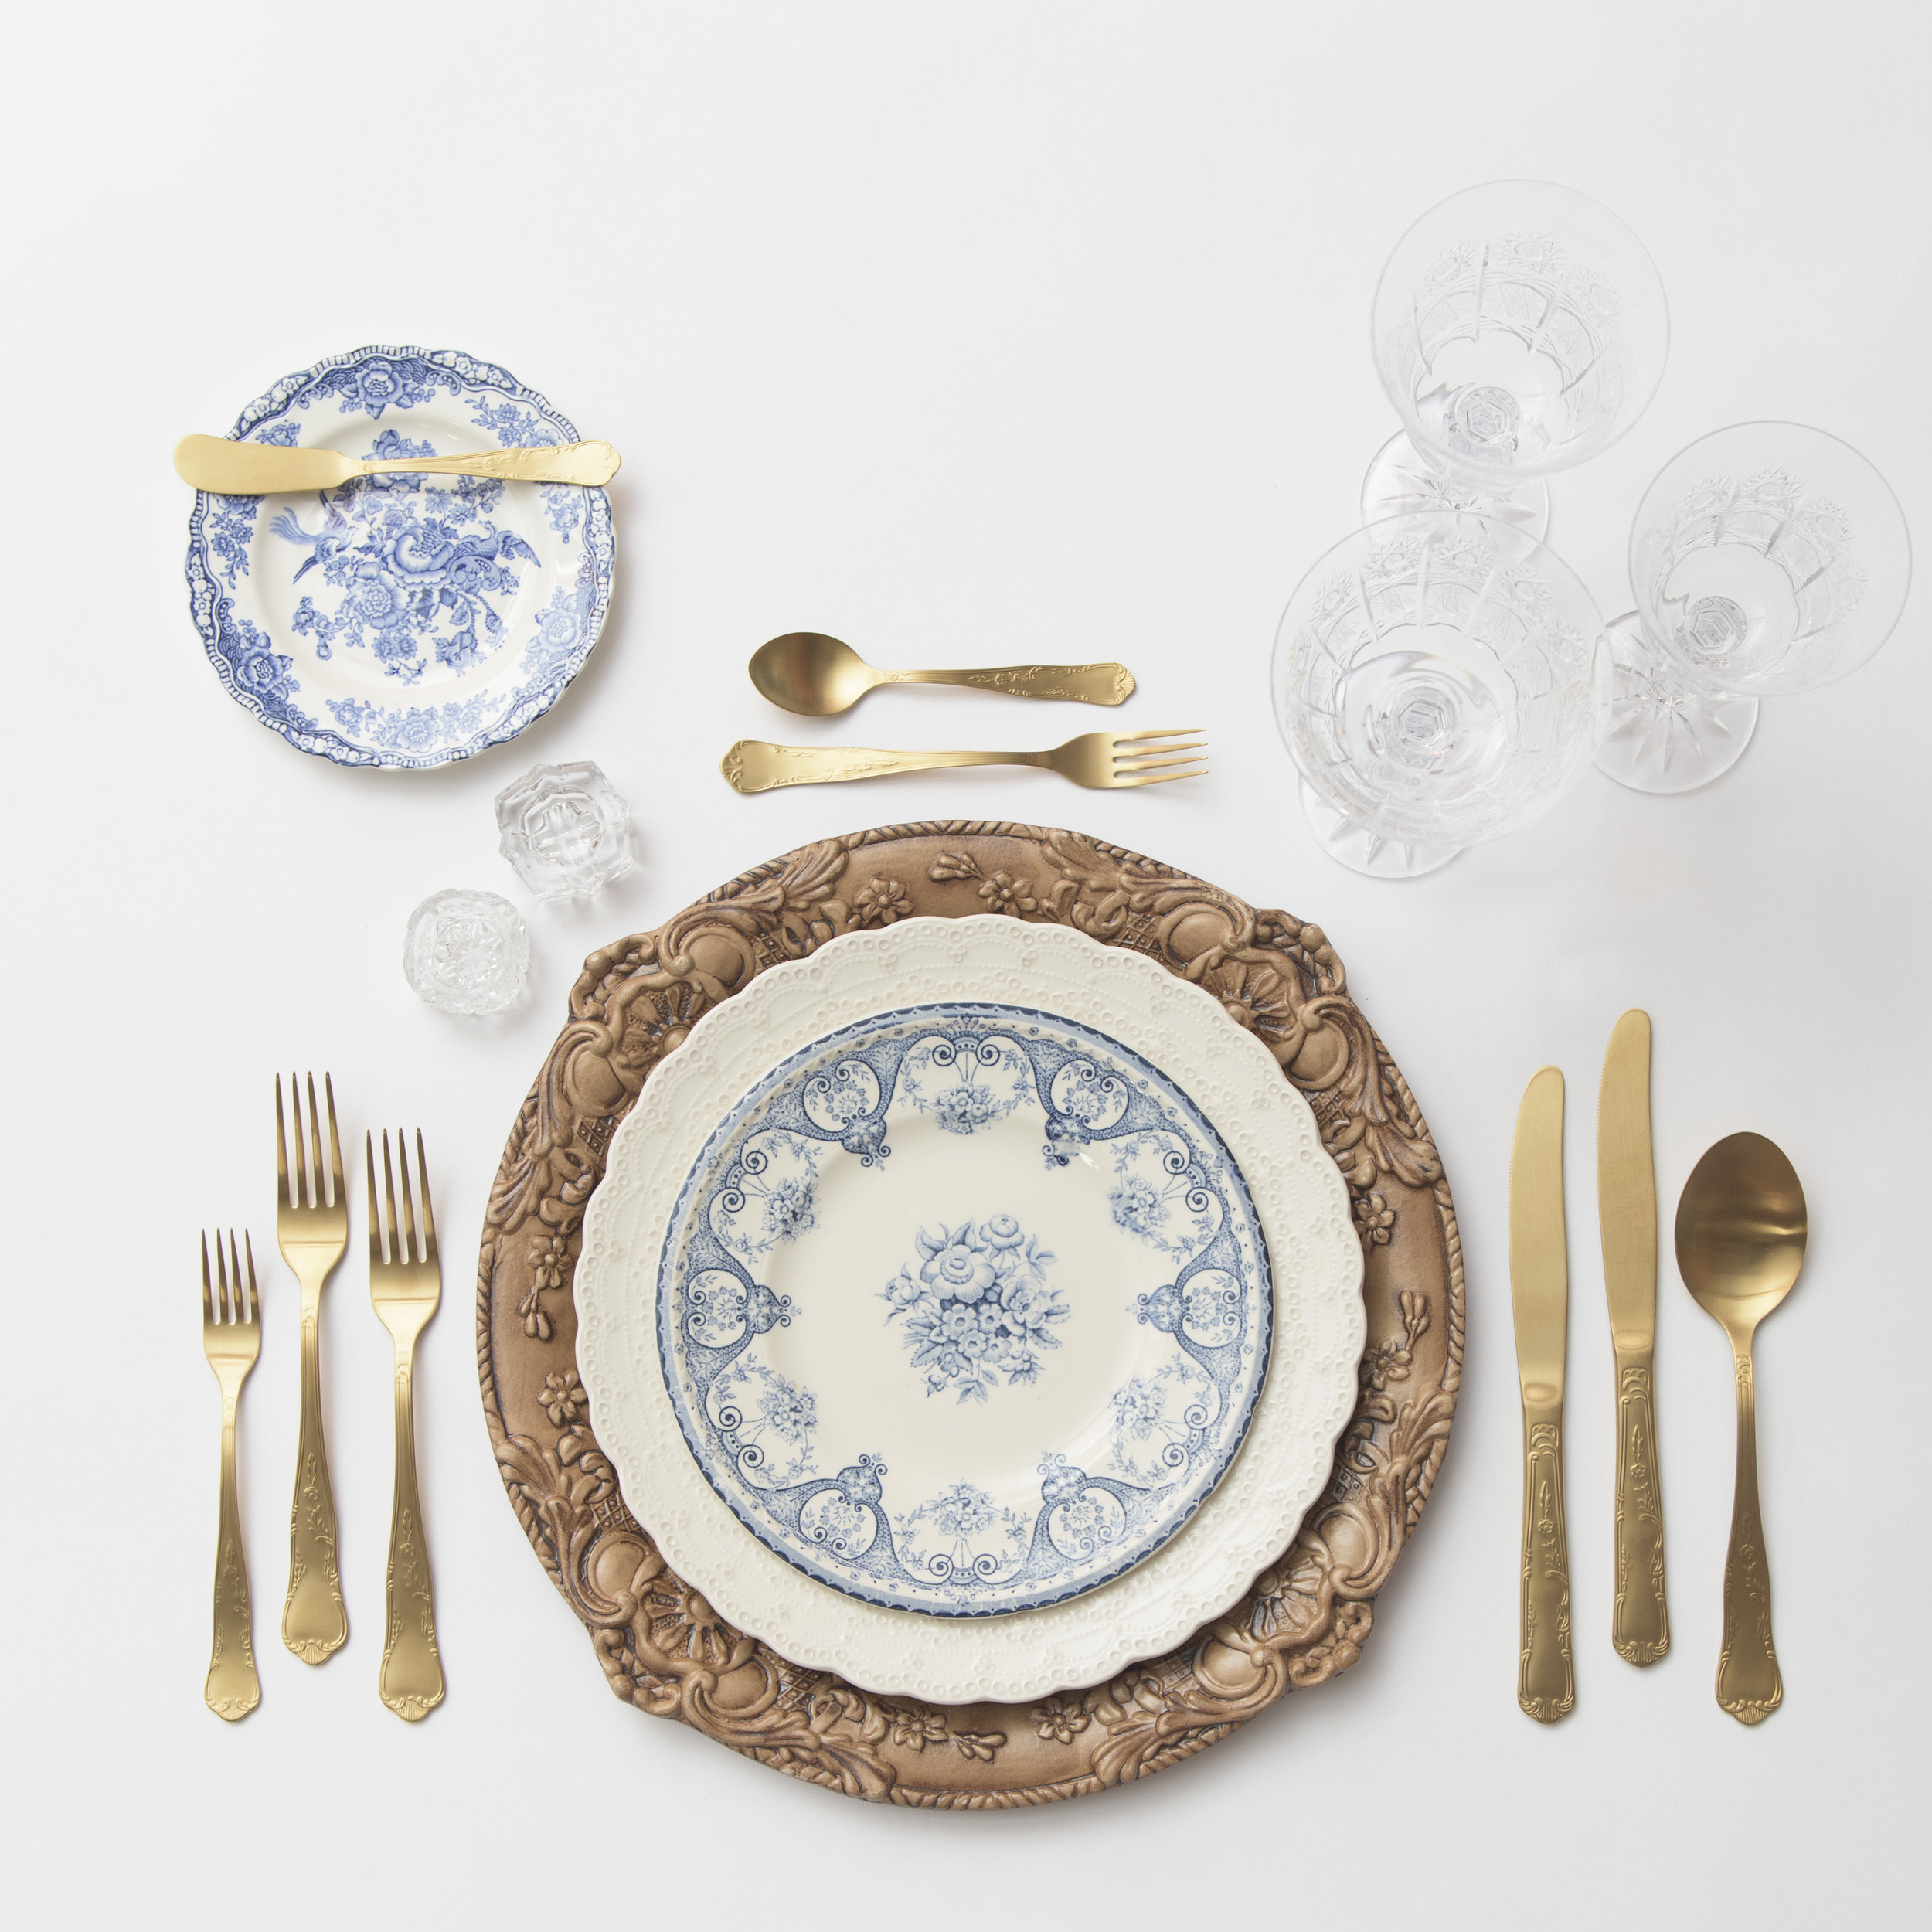 RENT: Verona Charger in Walnut + White Collection Vintage China + Blue Garden Collection Vintage China + Chateau Flatware in Matte Gold + Czech Crystal Stemware + Antique Crystal Salt Cellars   SHOP: Verona Charger in Walnut